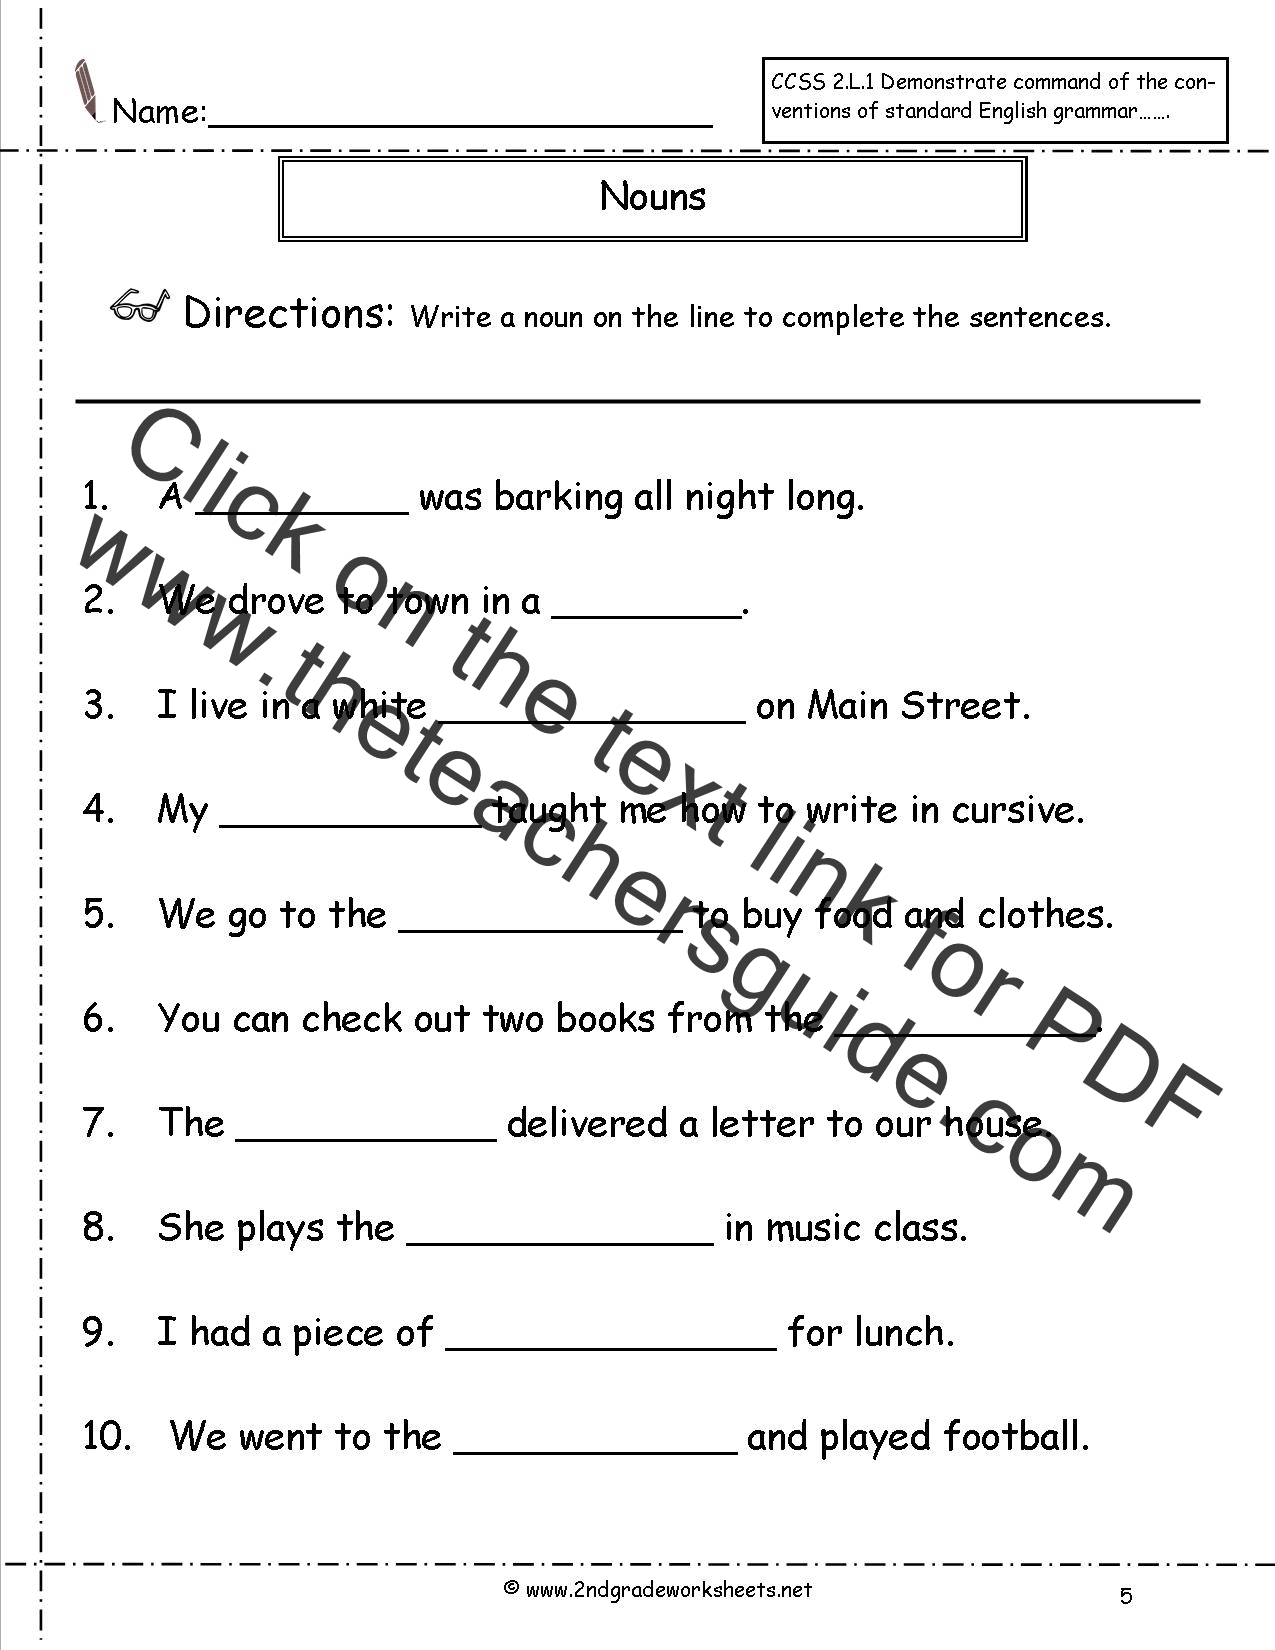 image relating to Printable Noun Worksheets named Nouns Worksheets and Printouts